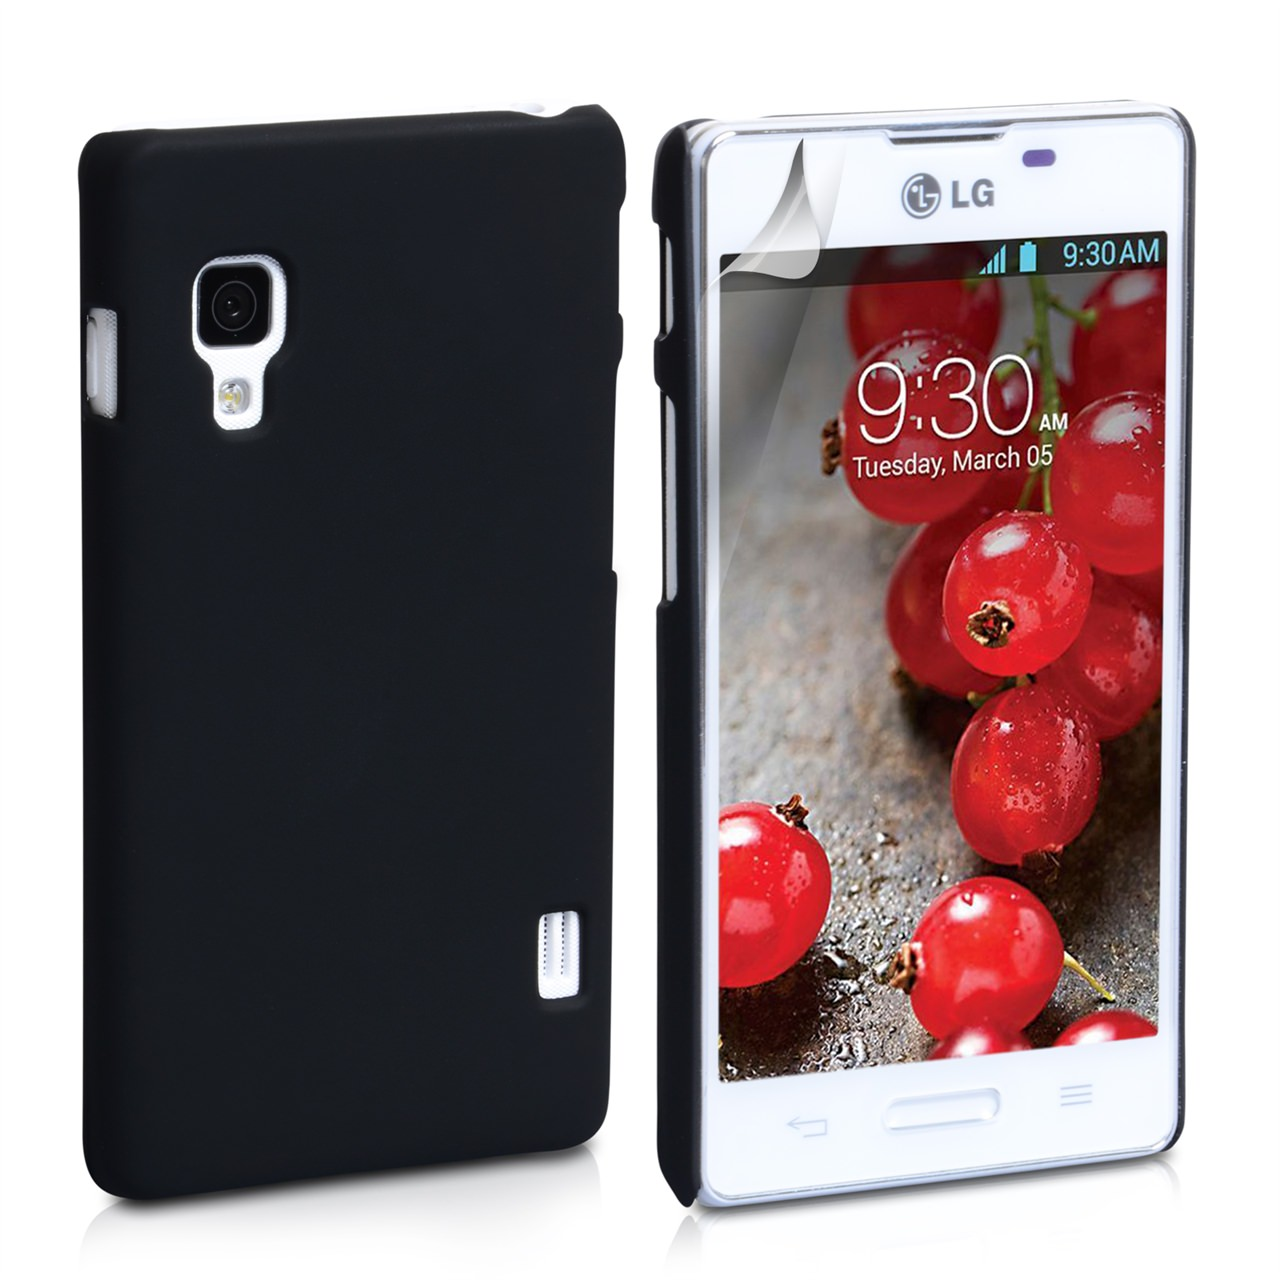 YouSave Accessories LG Optimus L5 II Black Hard Hybrid Case